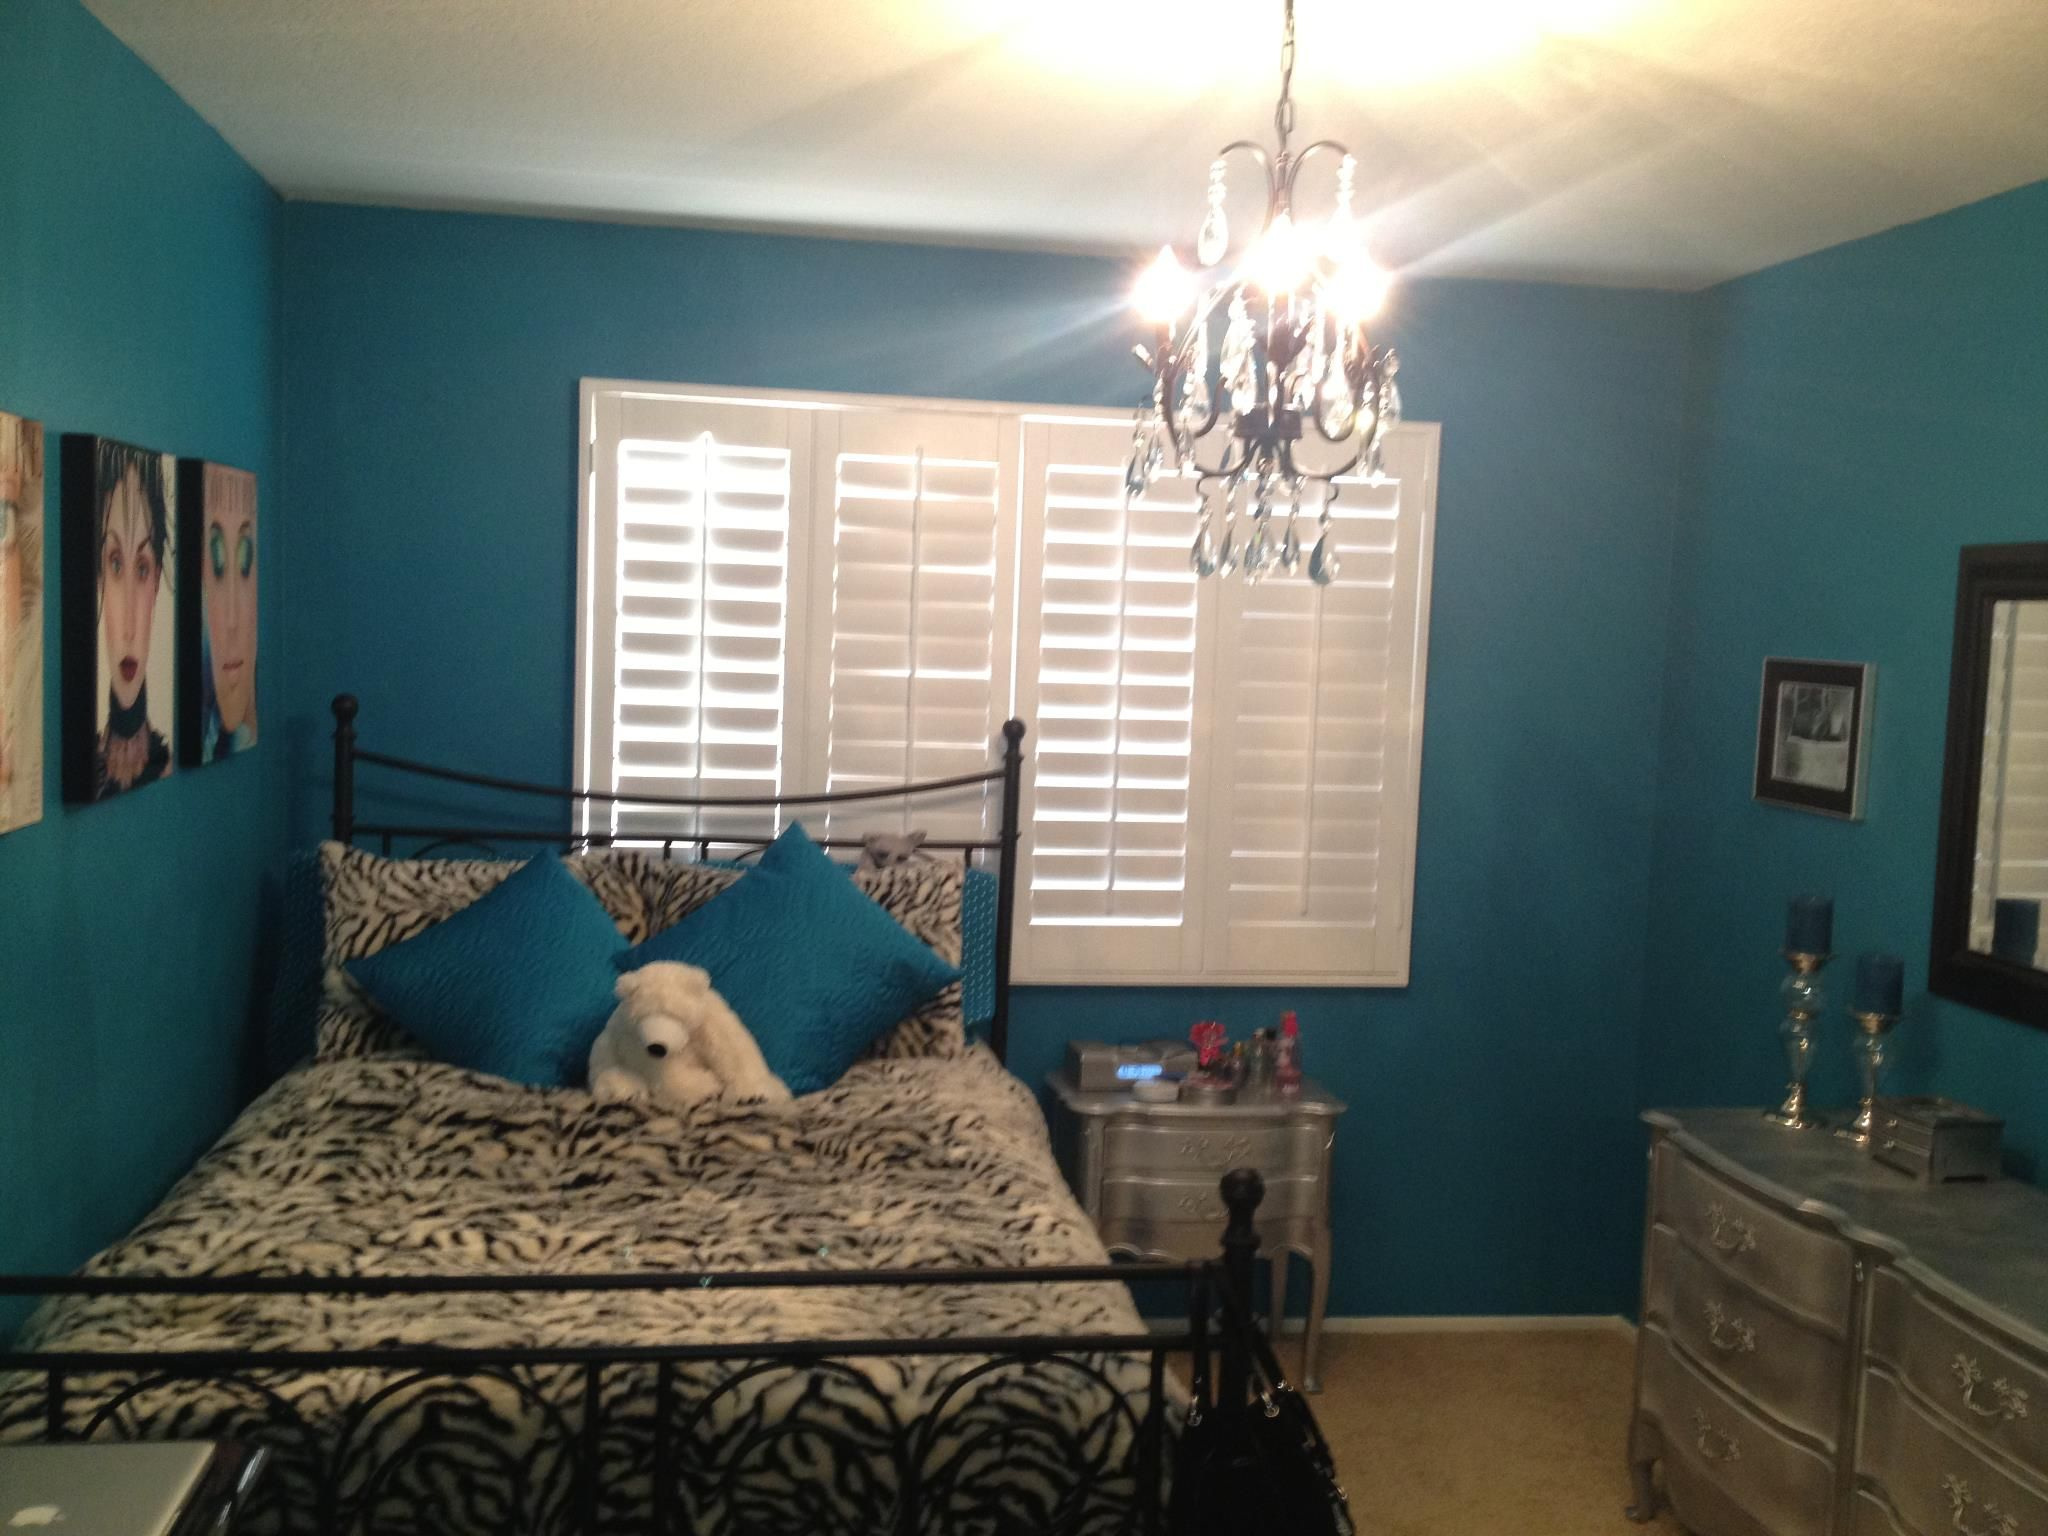 Teal Bedroom Paint Teal Wall Paint Chandelier Silver Diy Furniture Make A Maddy